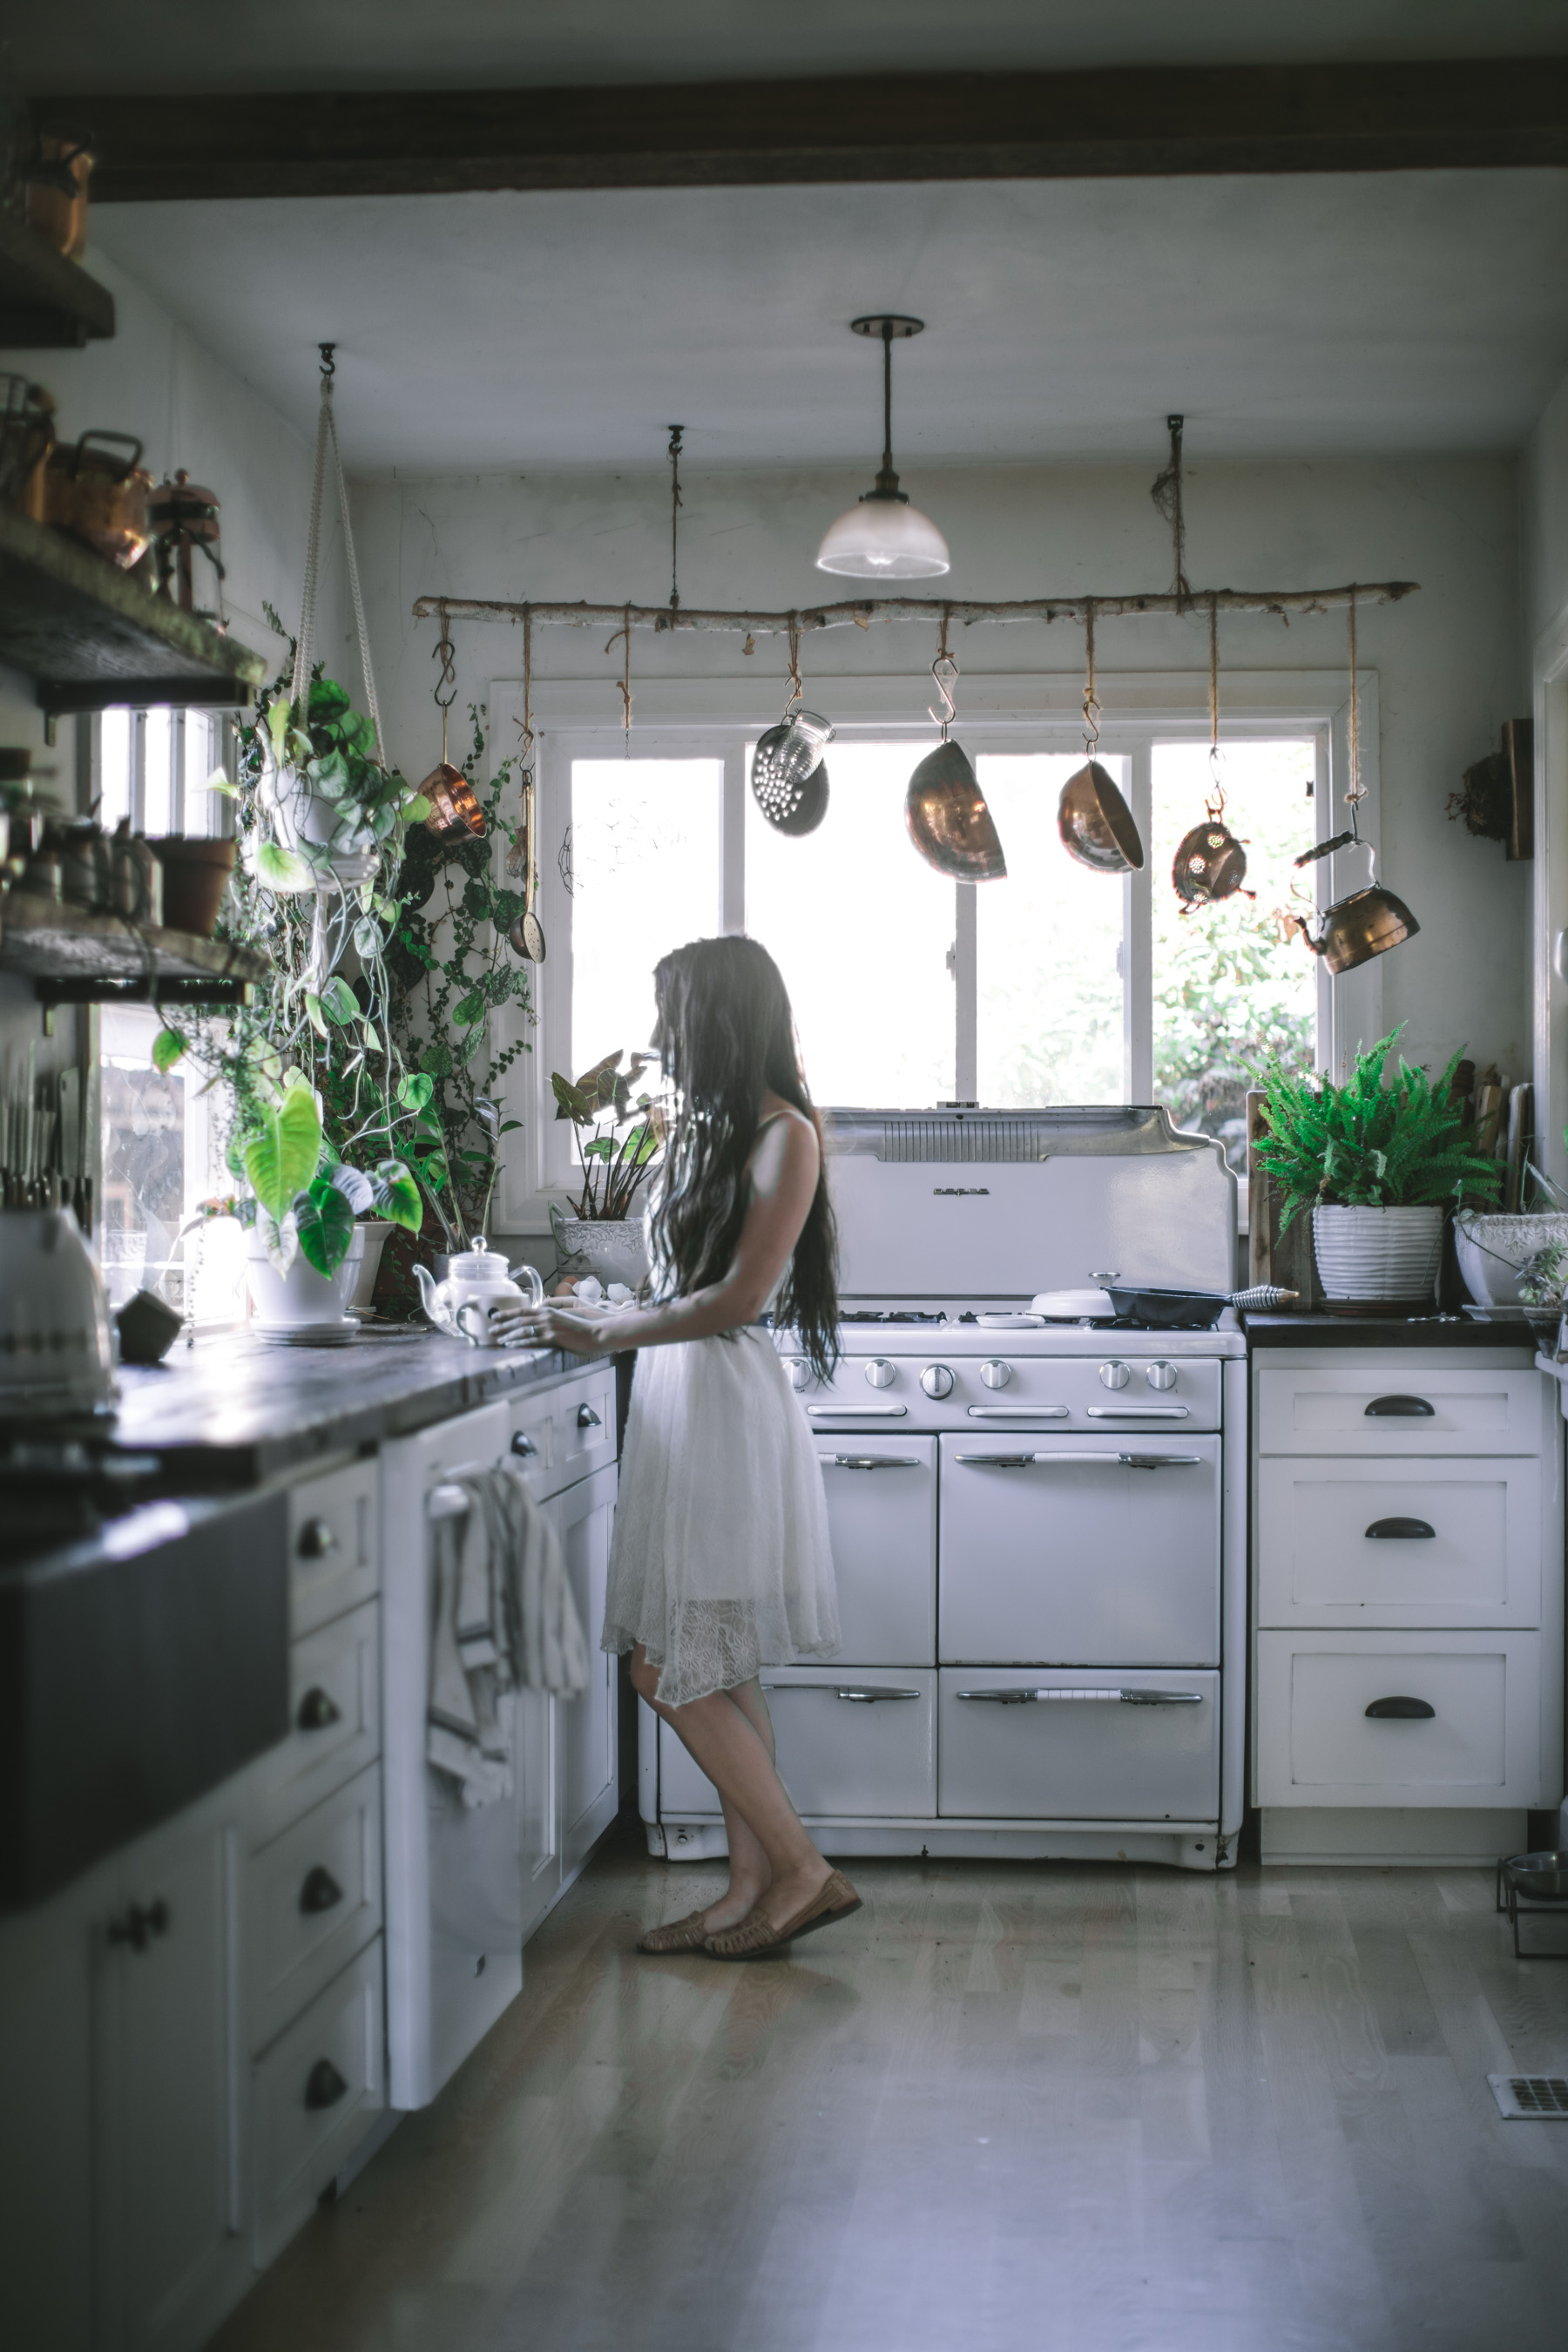 8 Tips For A Zero Waste Kitchen Adventures In Cooking